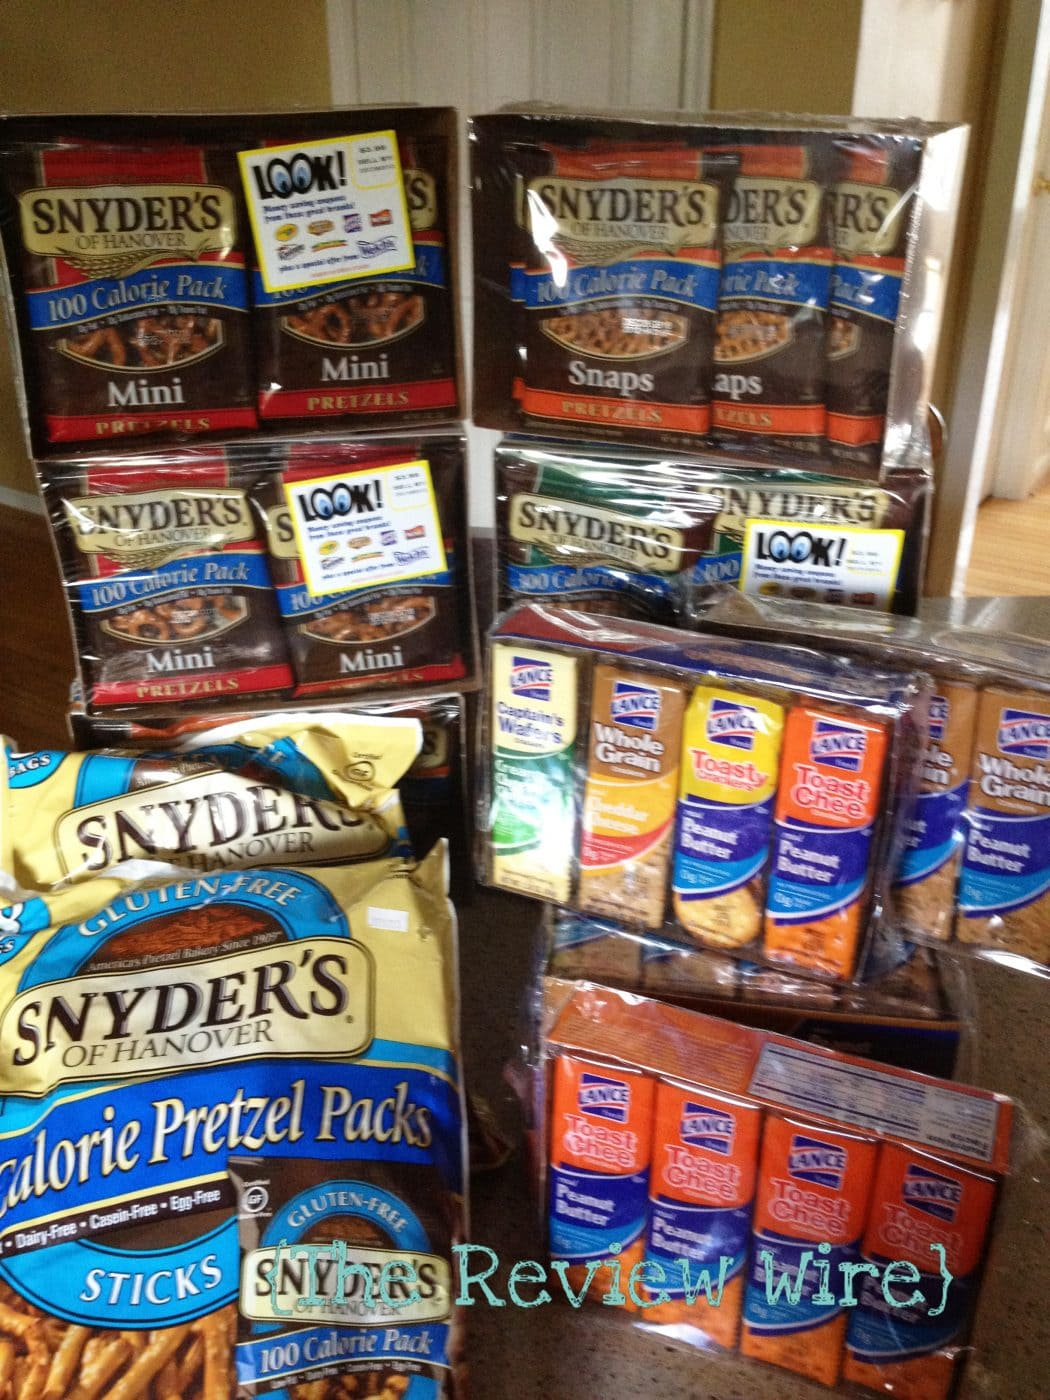 Snyders/Lance Review